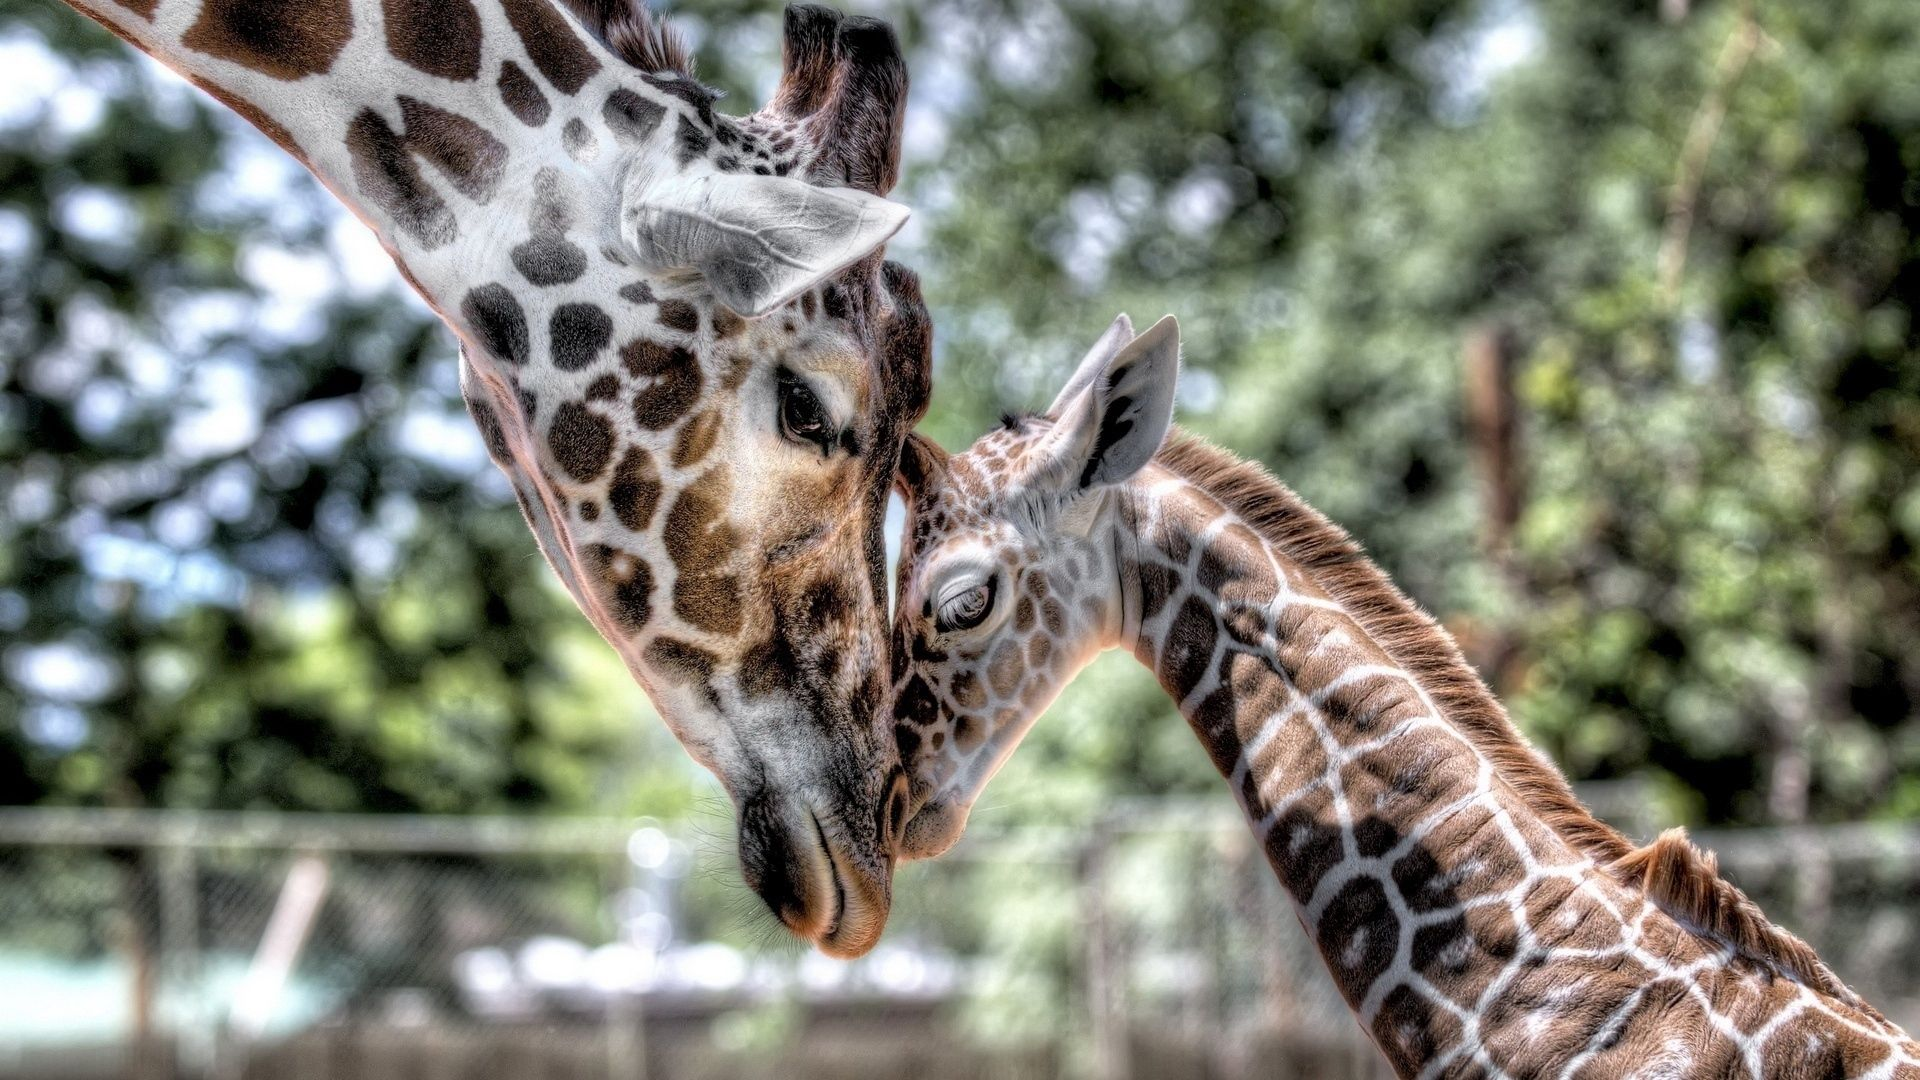 The Wallpapers Of Giraffes